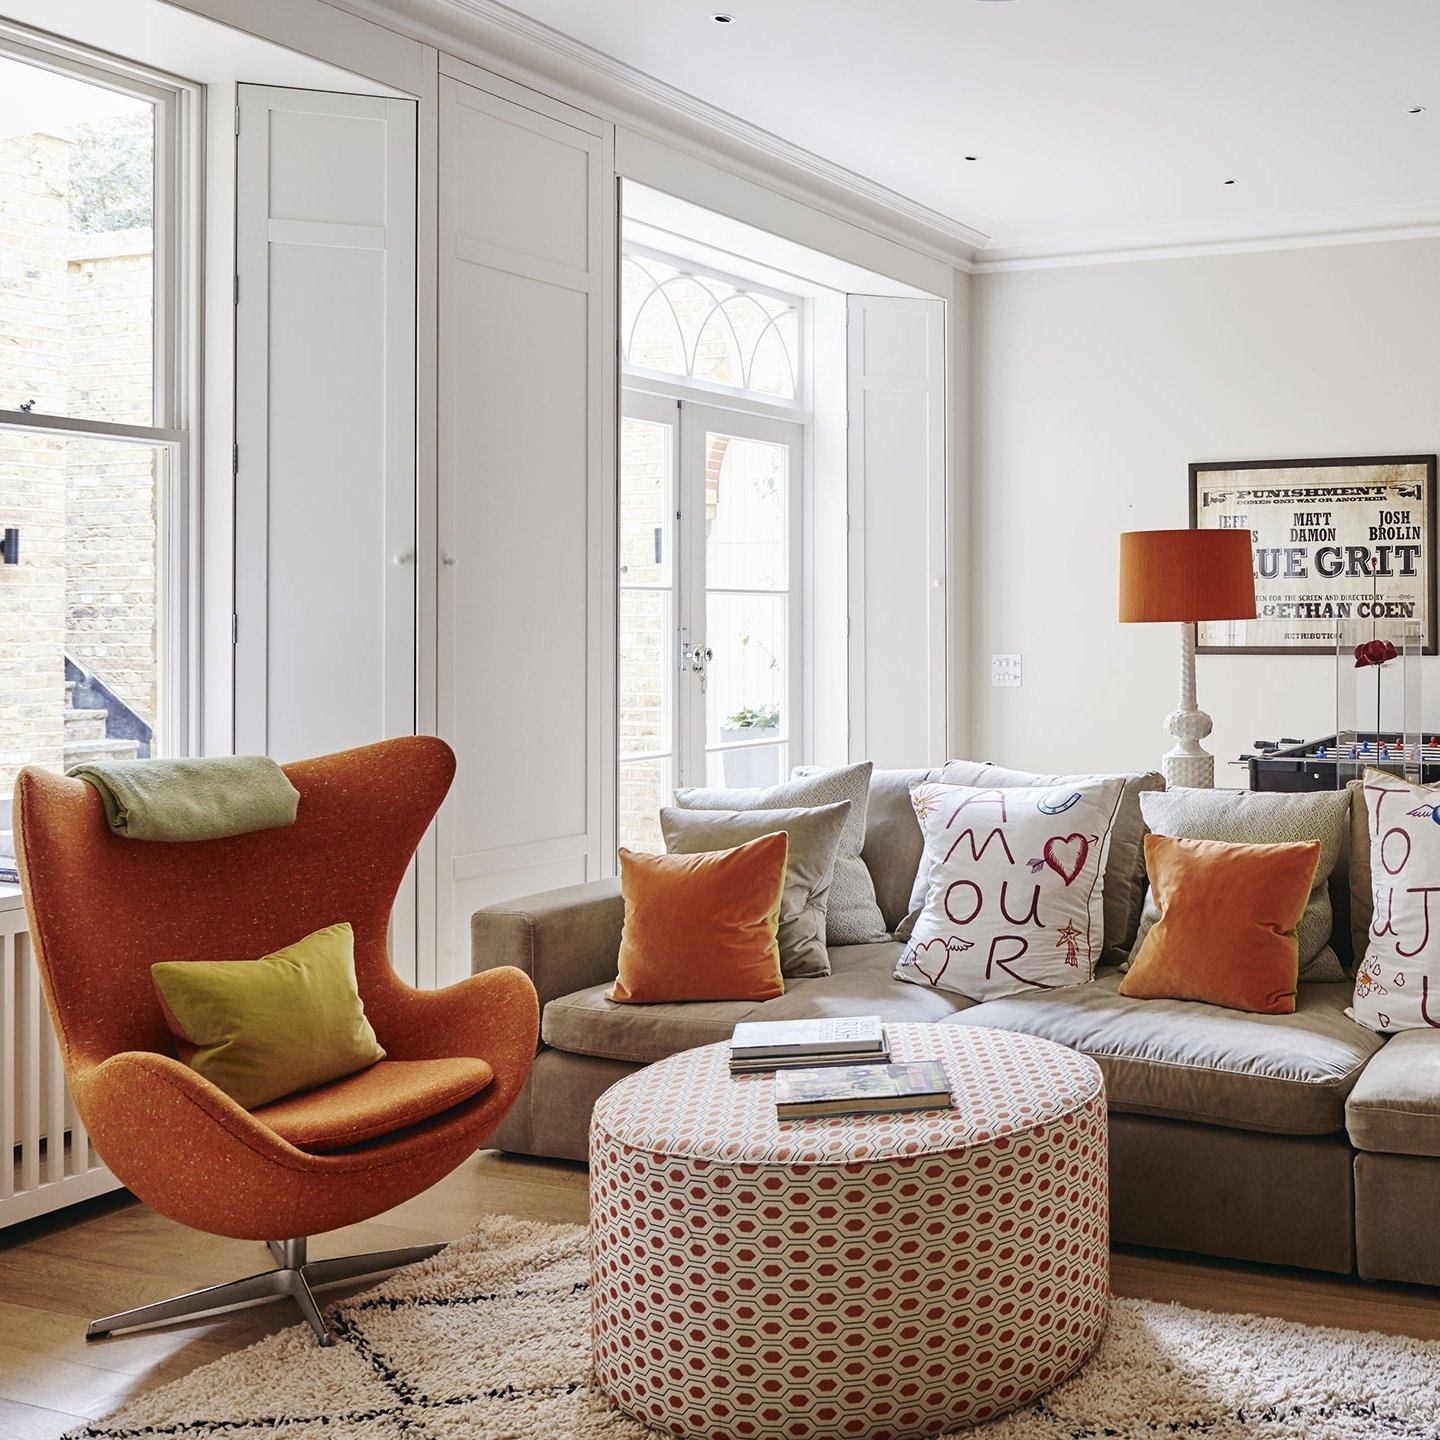 10 Stylish Living Room Color Scheme Ideas white living room with orange accents 1